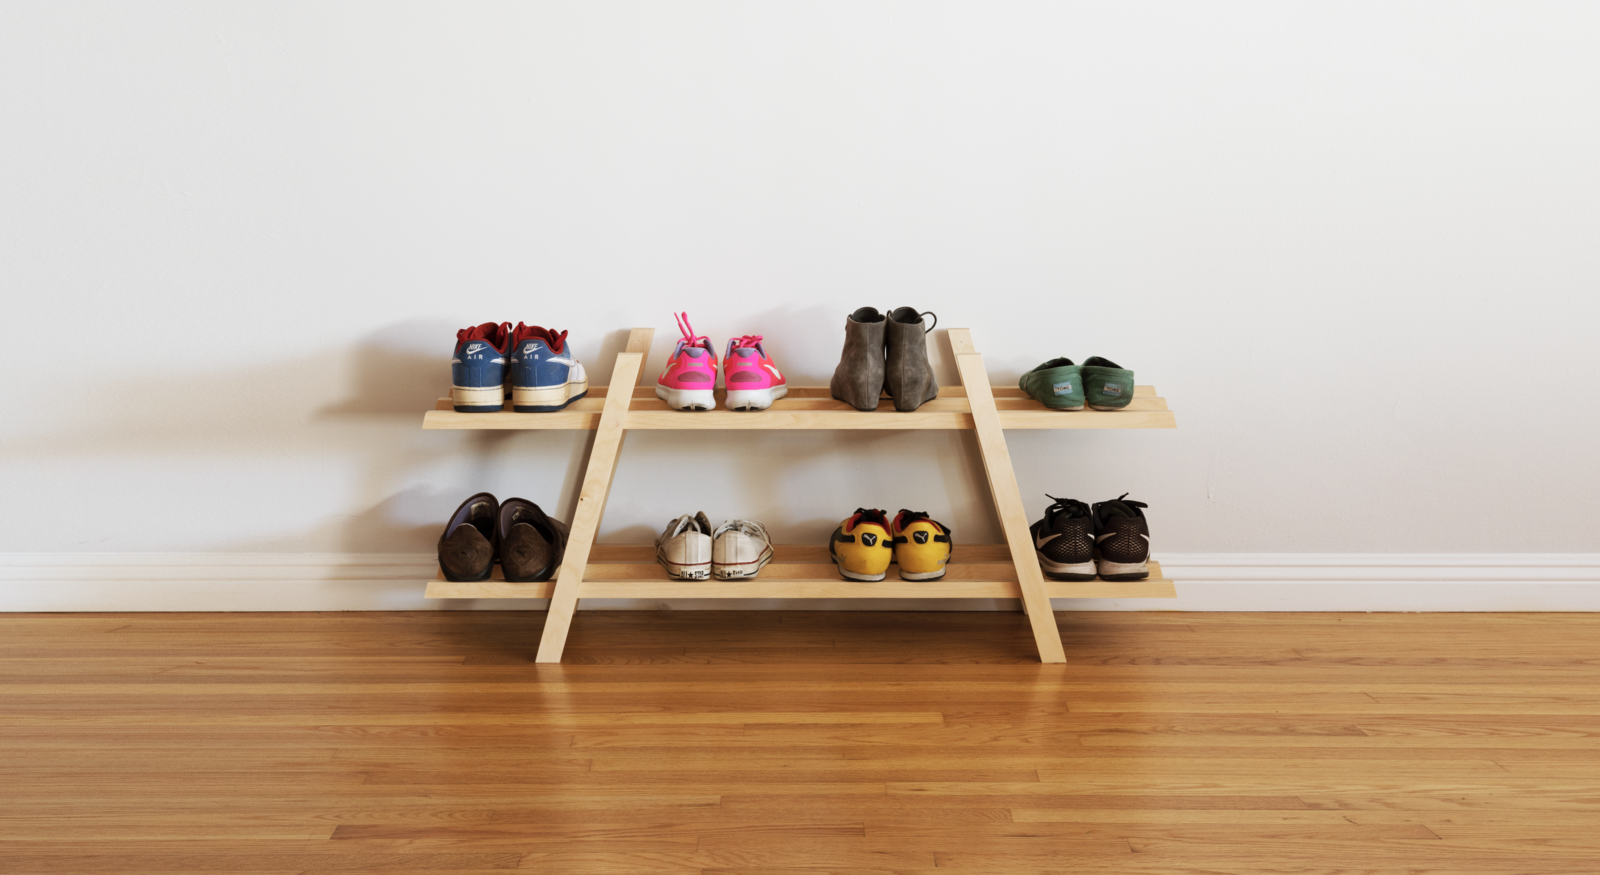 Storage Room Photo 10 Of 13 In Dwell Made Presents: DIY Modern Shoe Rack